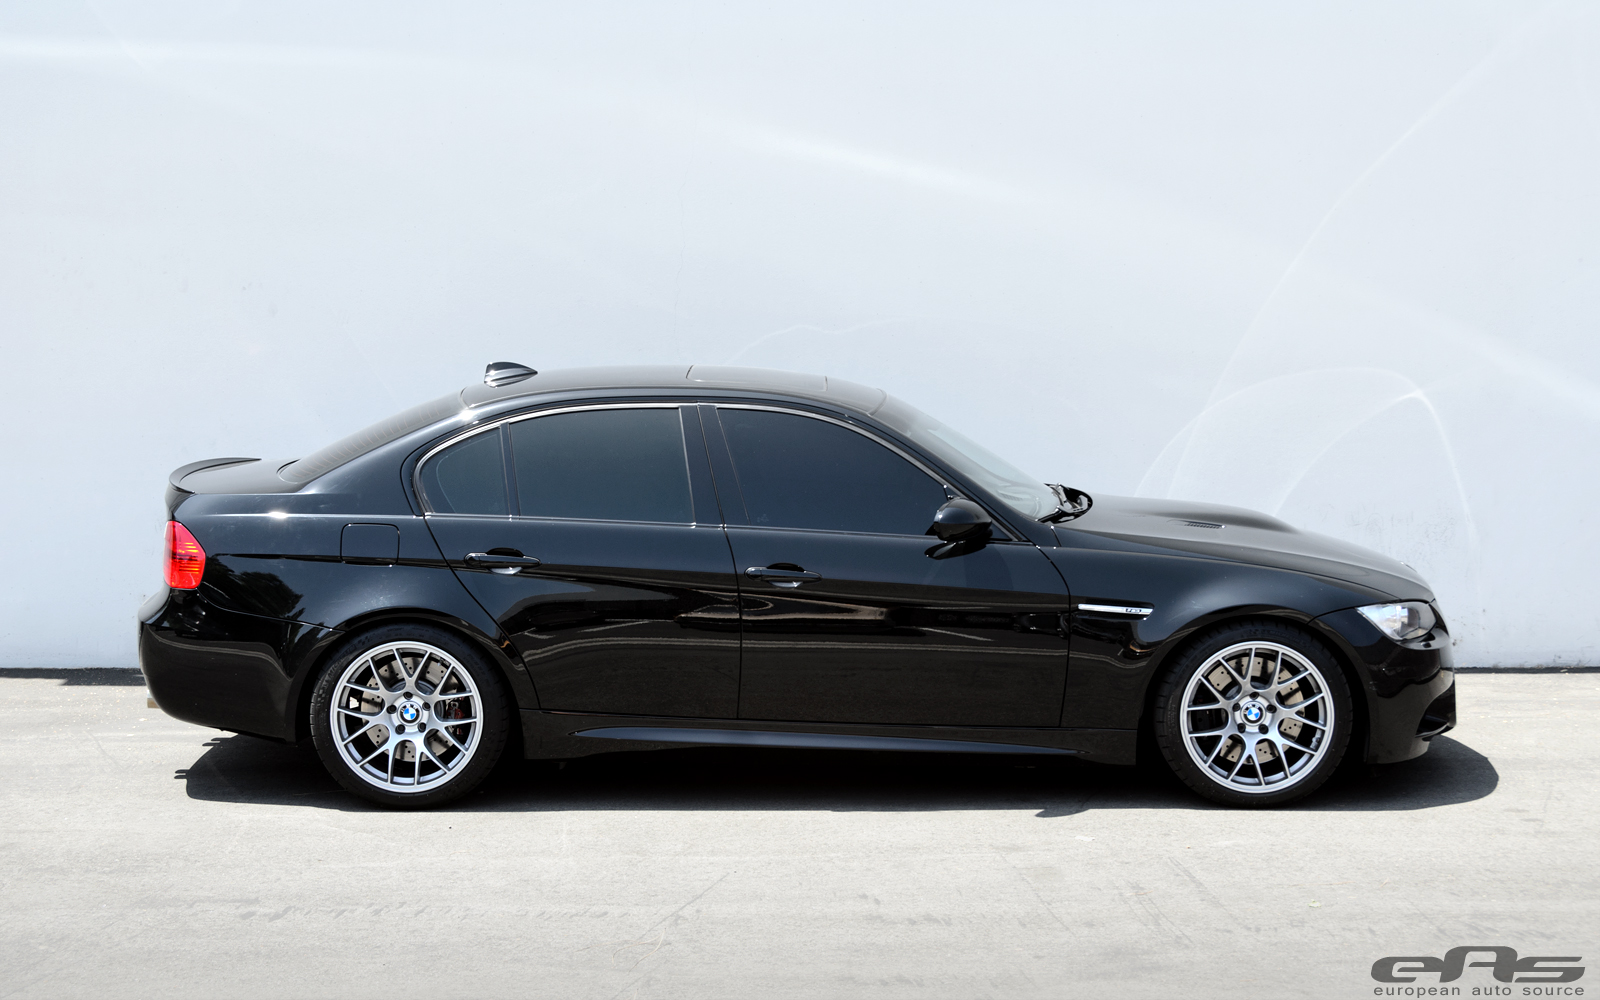 Jet Black E90 M3 On Apex Ec 7 Wheels Bmw Performance Parts Services